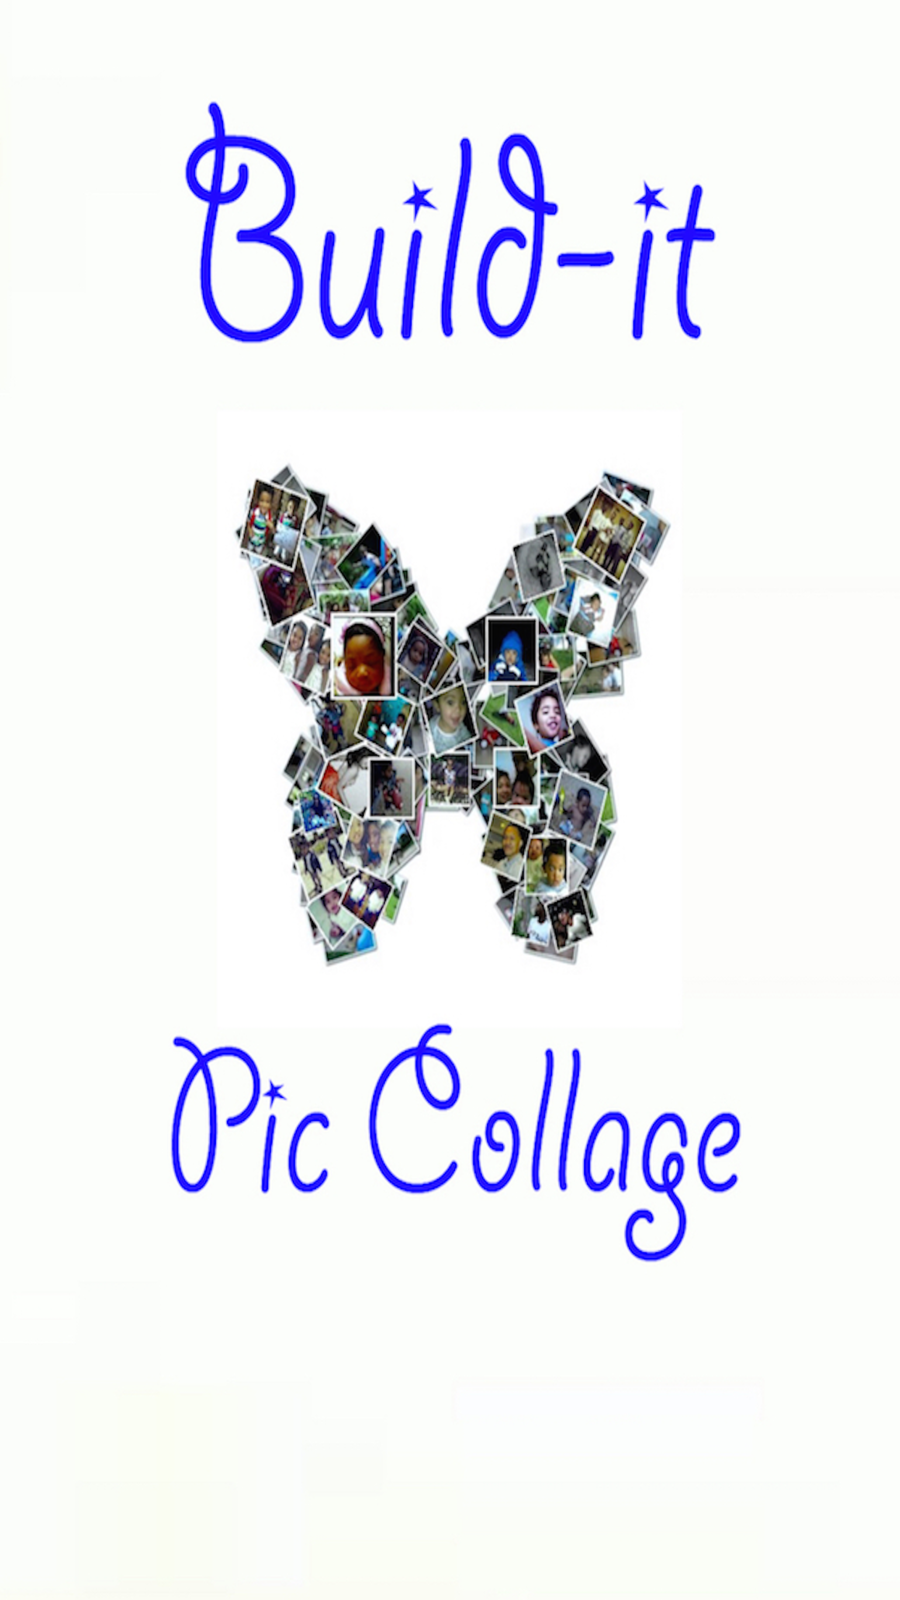 Buildit Pic Collage Customizable Photo Collage Maker